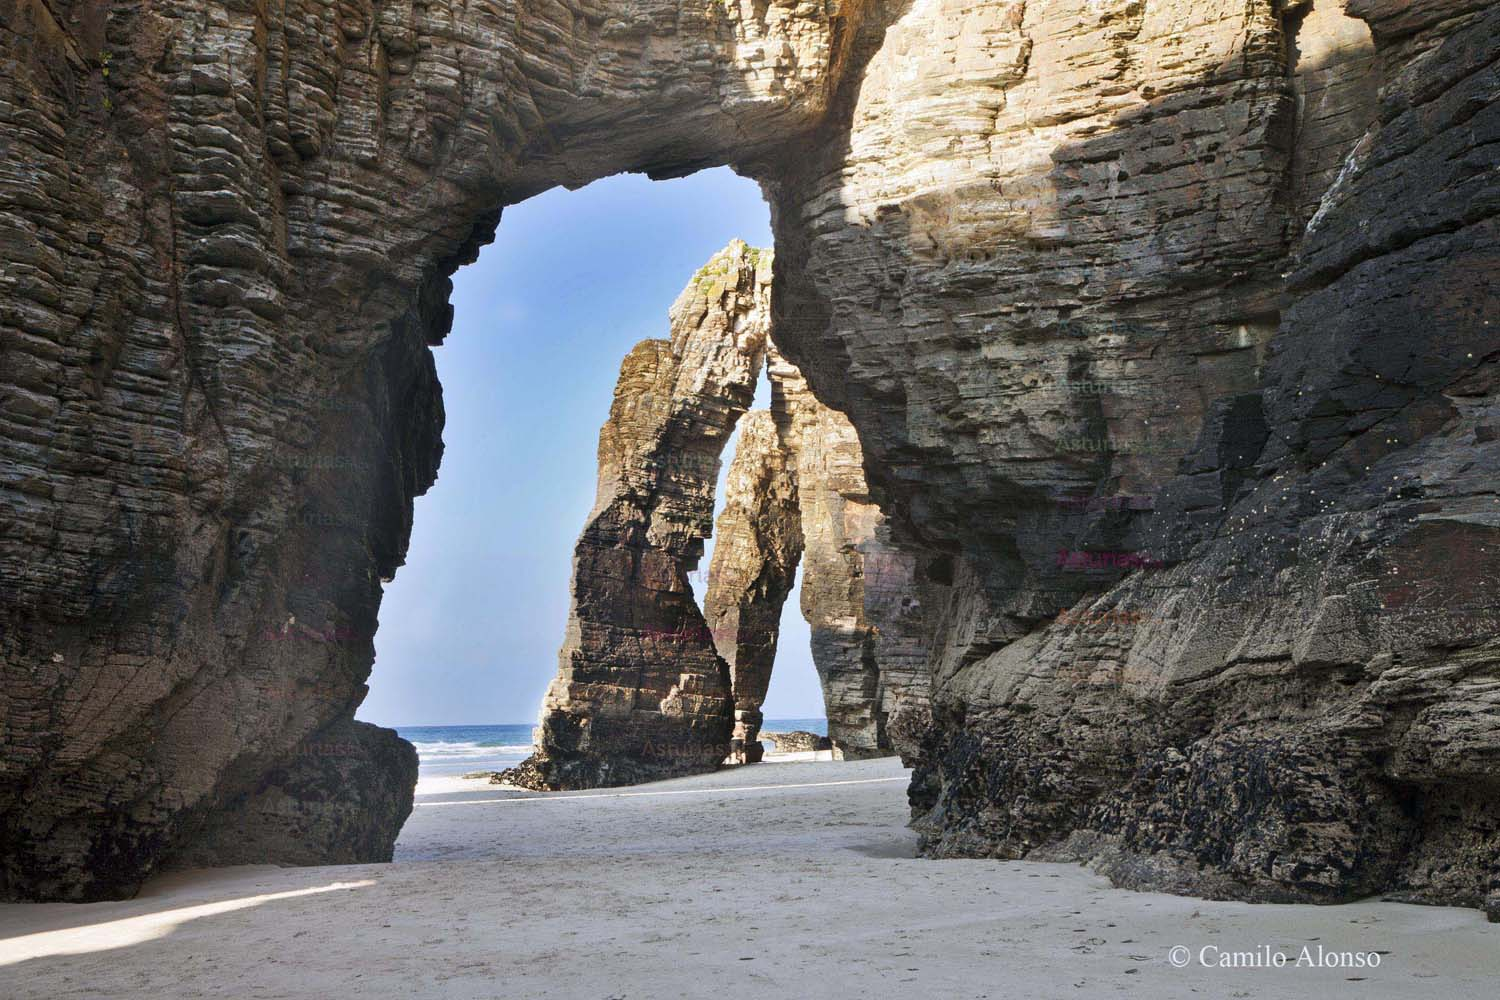 The Cathedrals beach is a protected Natural Monument.